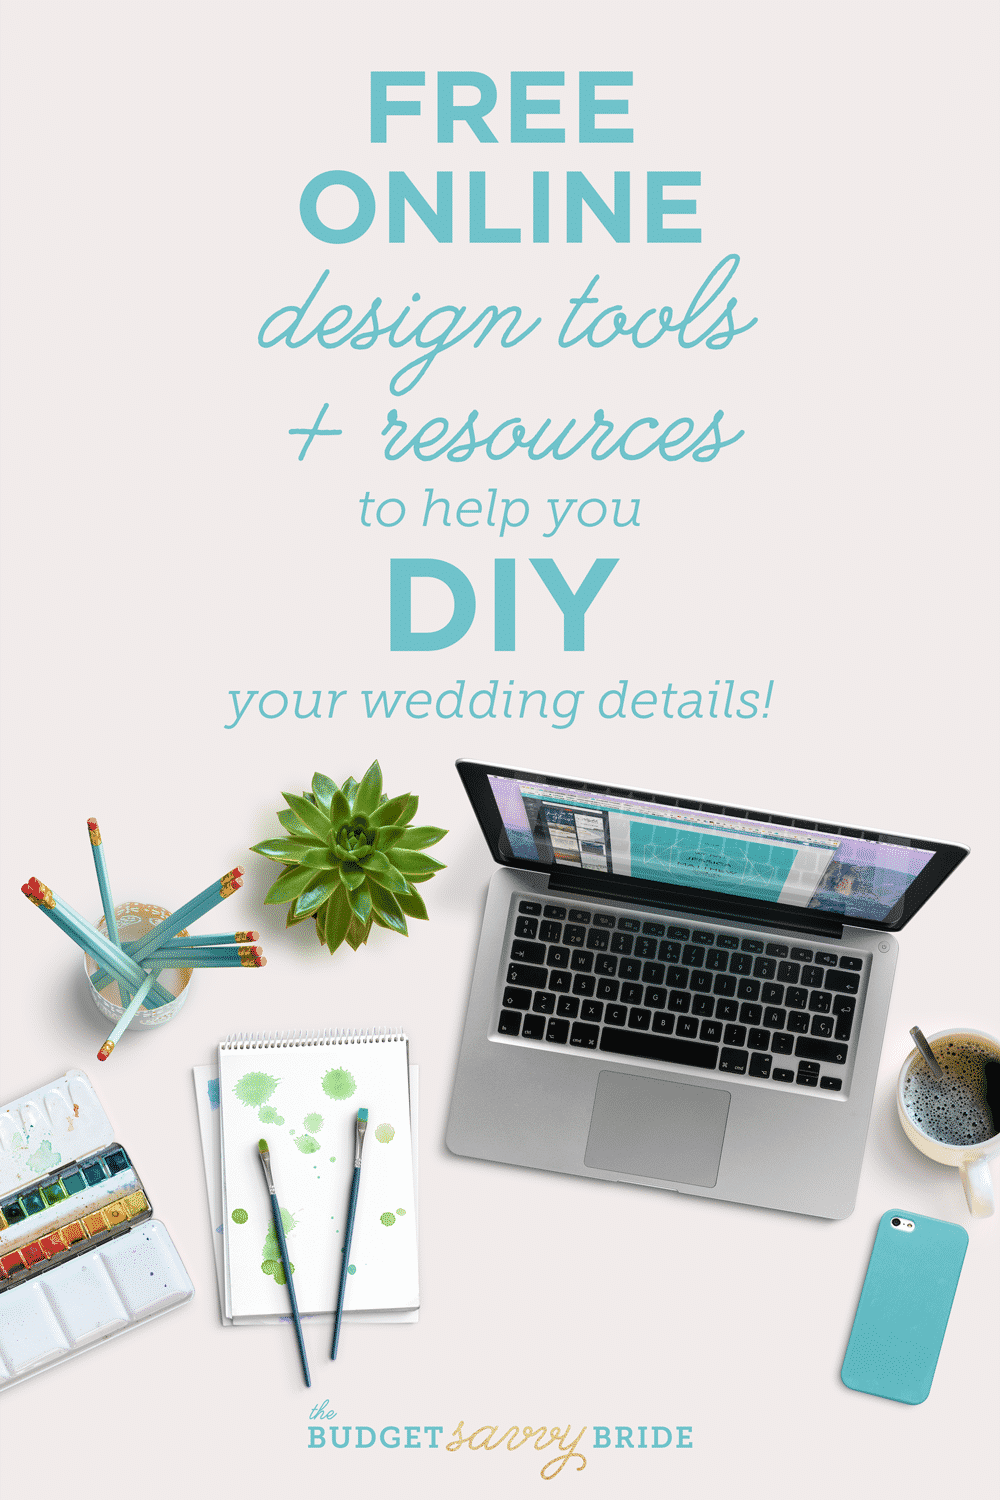 Design Tools Online Design Tools Online Free Design Tools To Help You Diy Your